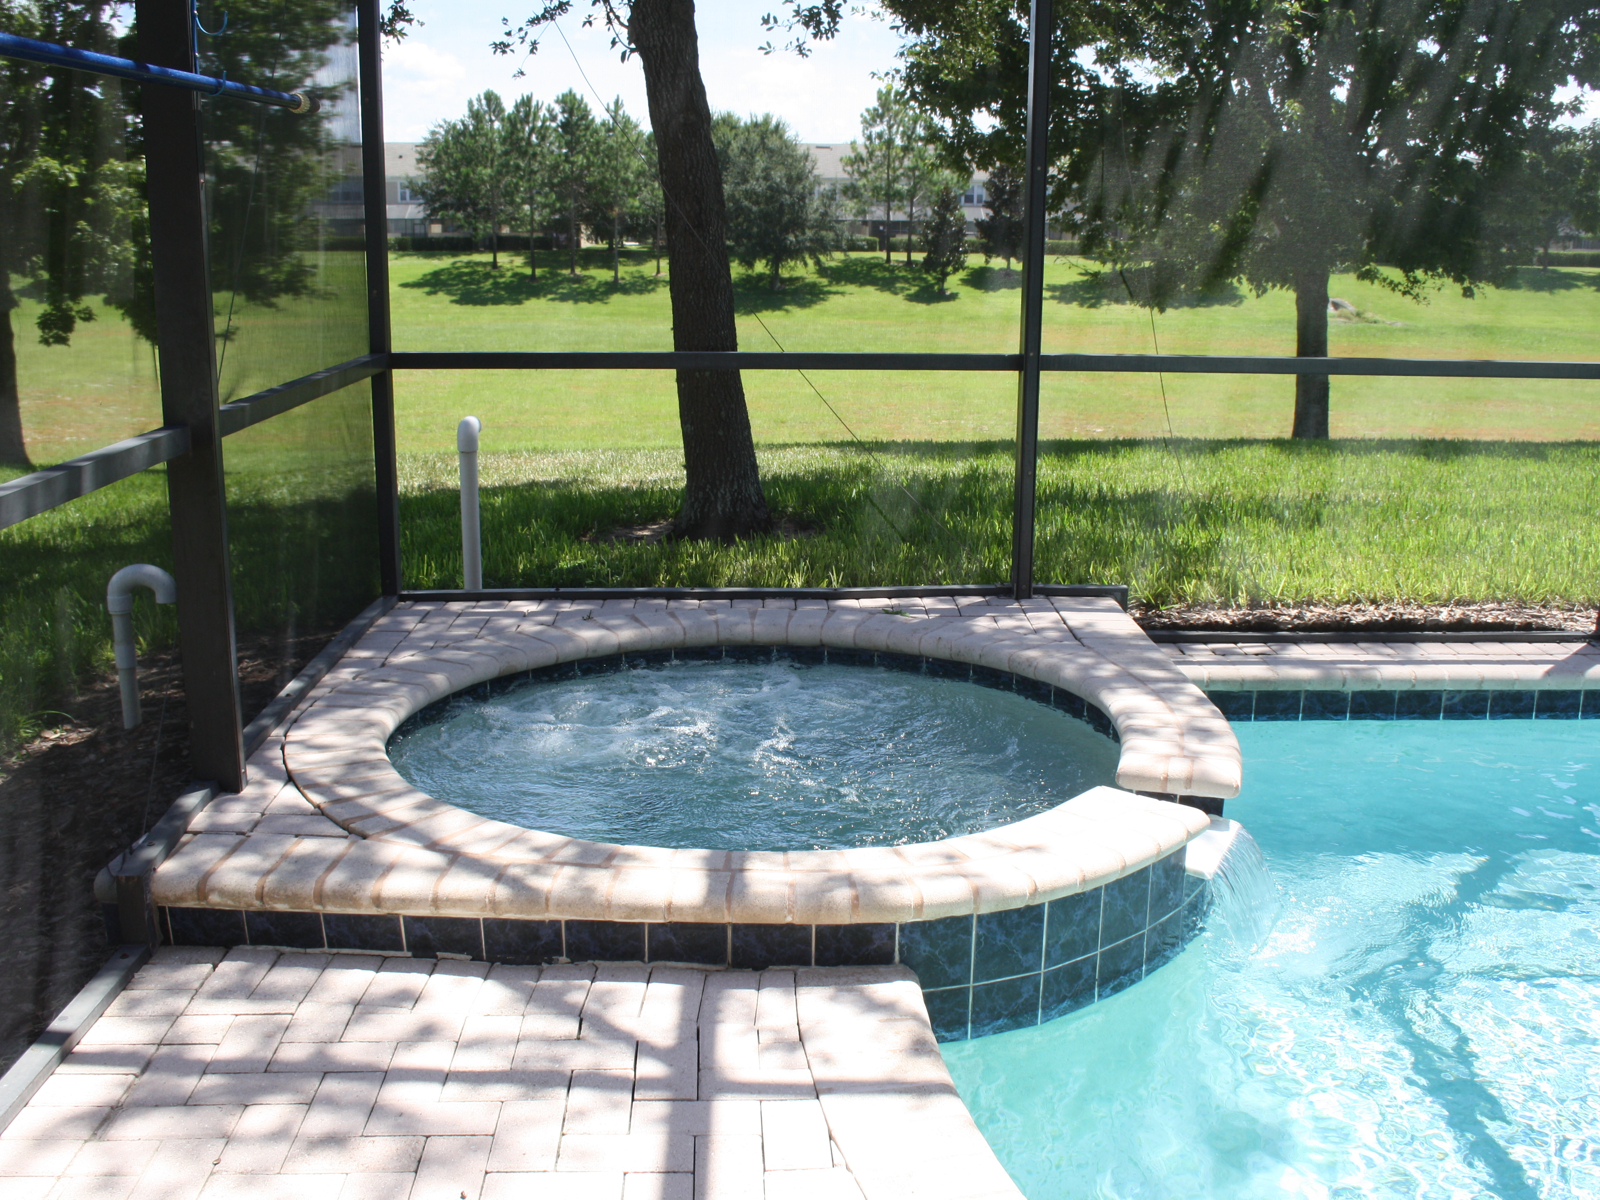 Disney At Windsor Hills Amenities Our 6 Bedroom Vacation